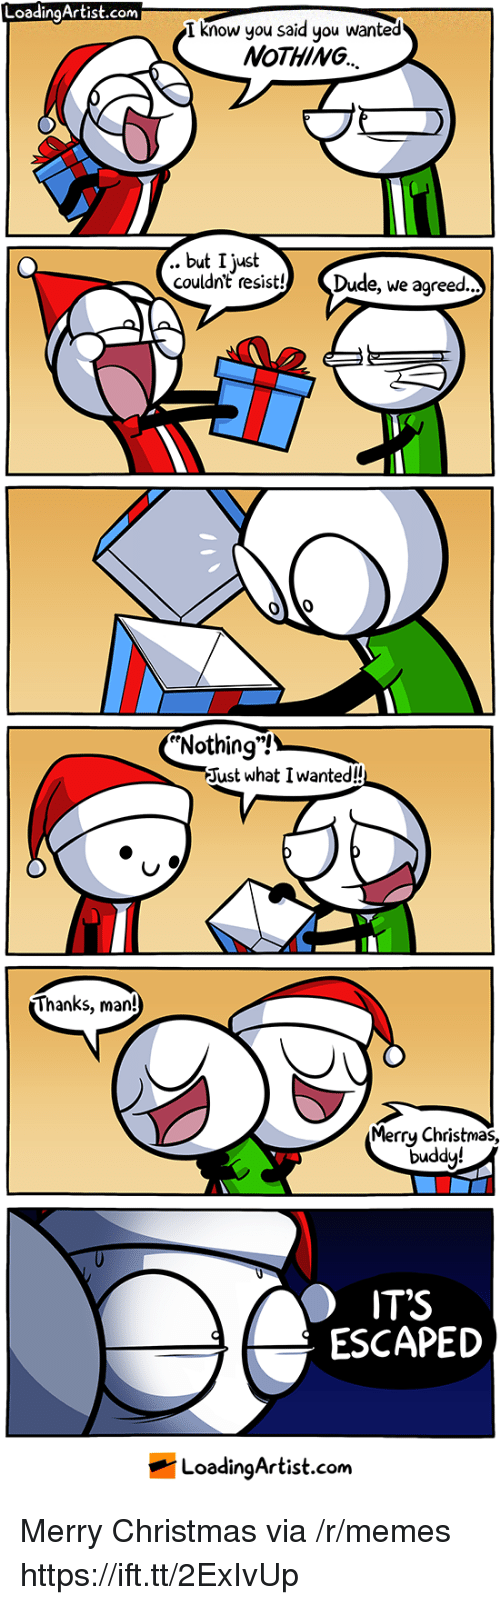 "Thanks Man: LoadingArtist.com  I know you said you wanted  NoTHING  .. but I just  couldnt resist! Dude, we agreed..  Nothing""!  Just what I wanted!  Thanks, man!  Merrų Christmas,  duddy!  IT'S  ESCAPED  LoadingArtist.com Merry Christmas via /r/memes https://ift.tt/2ExIvUp"